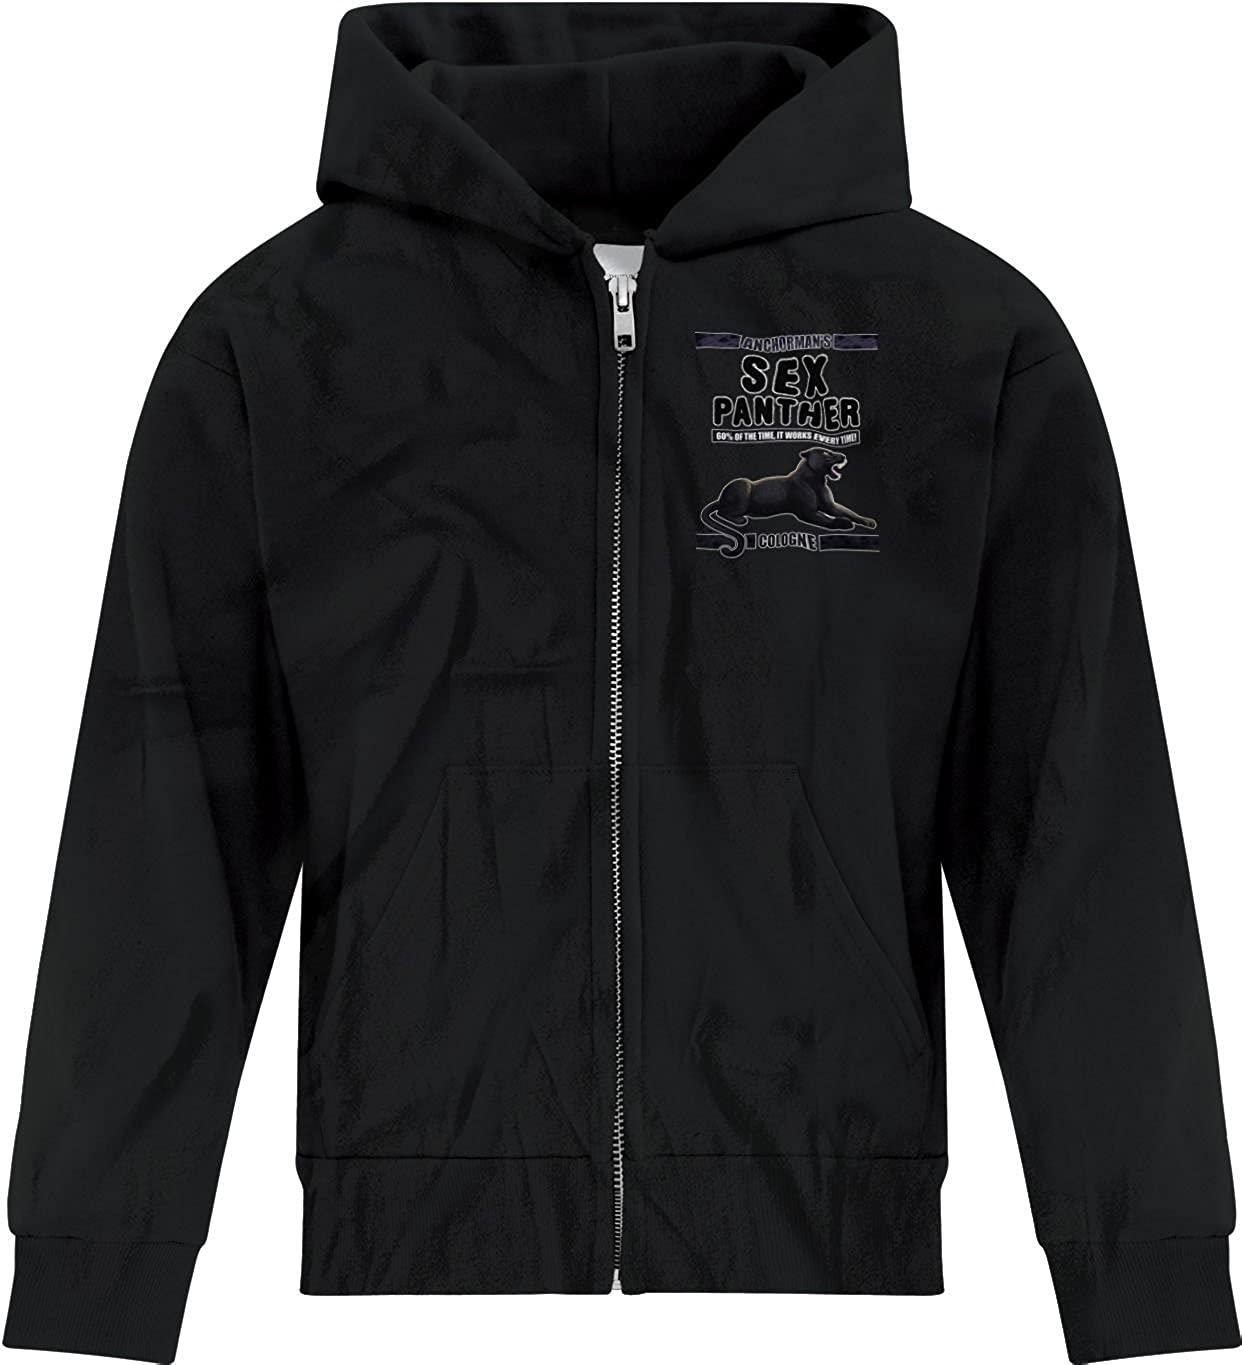 BSW Youth Boys Panther Cologne Anchorman Zip Hoodie